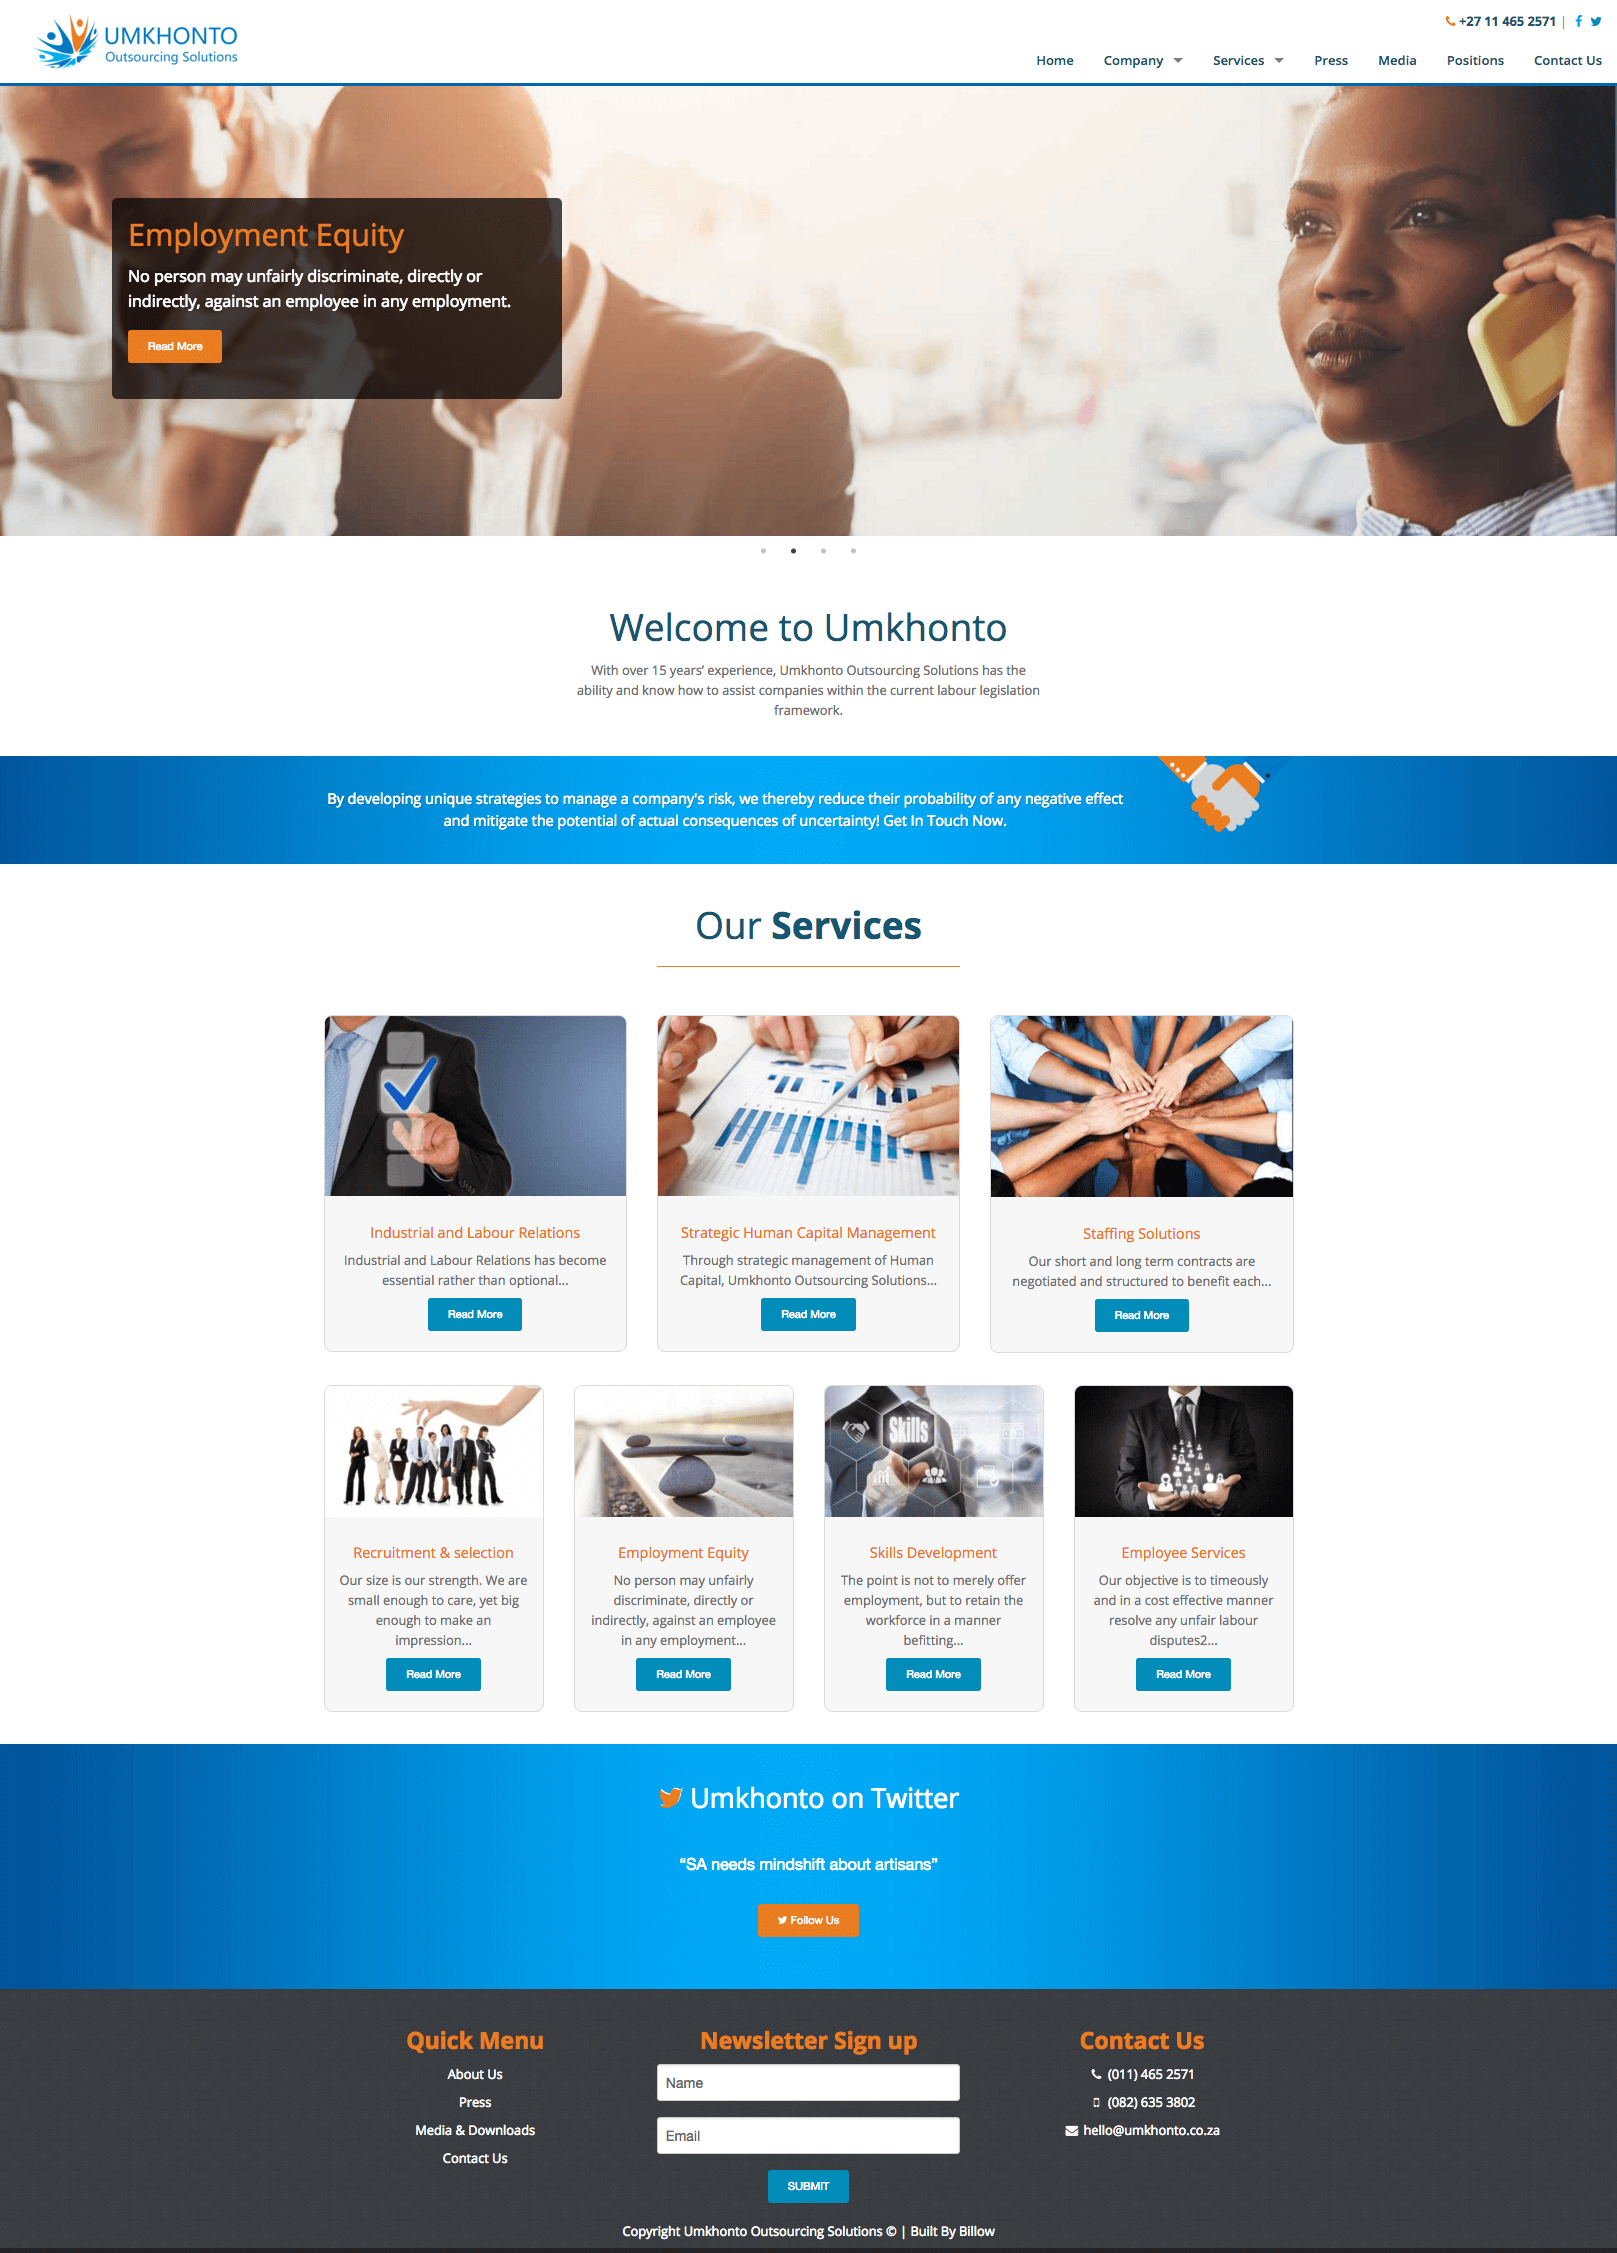 Umkhonto website by Billow